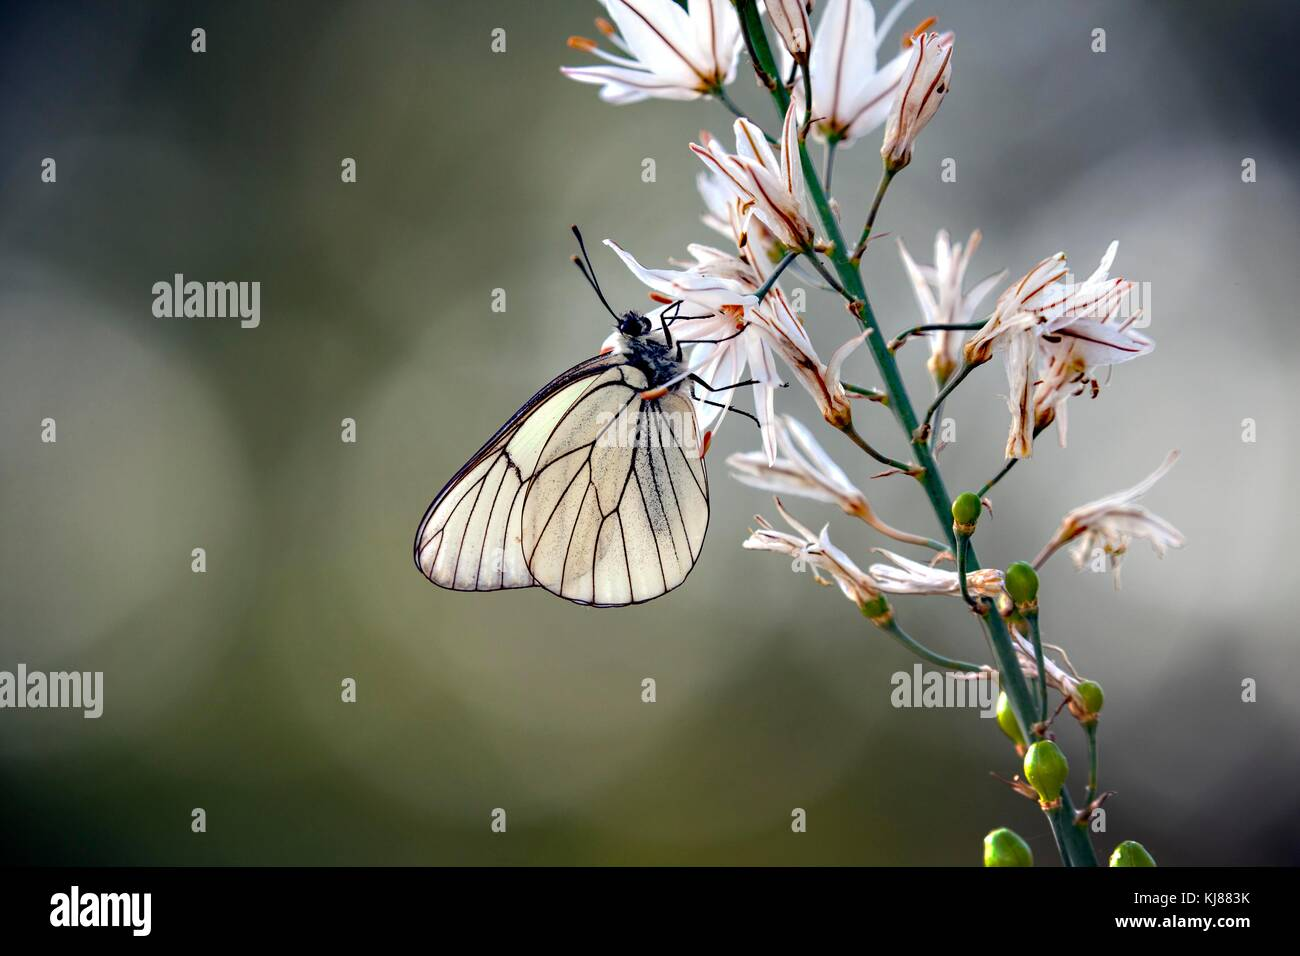 Black-veined White butterfly Aporia crataegi basking in the sun on a flowerhead  at Riaza in central Spain Stock Photo